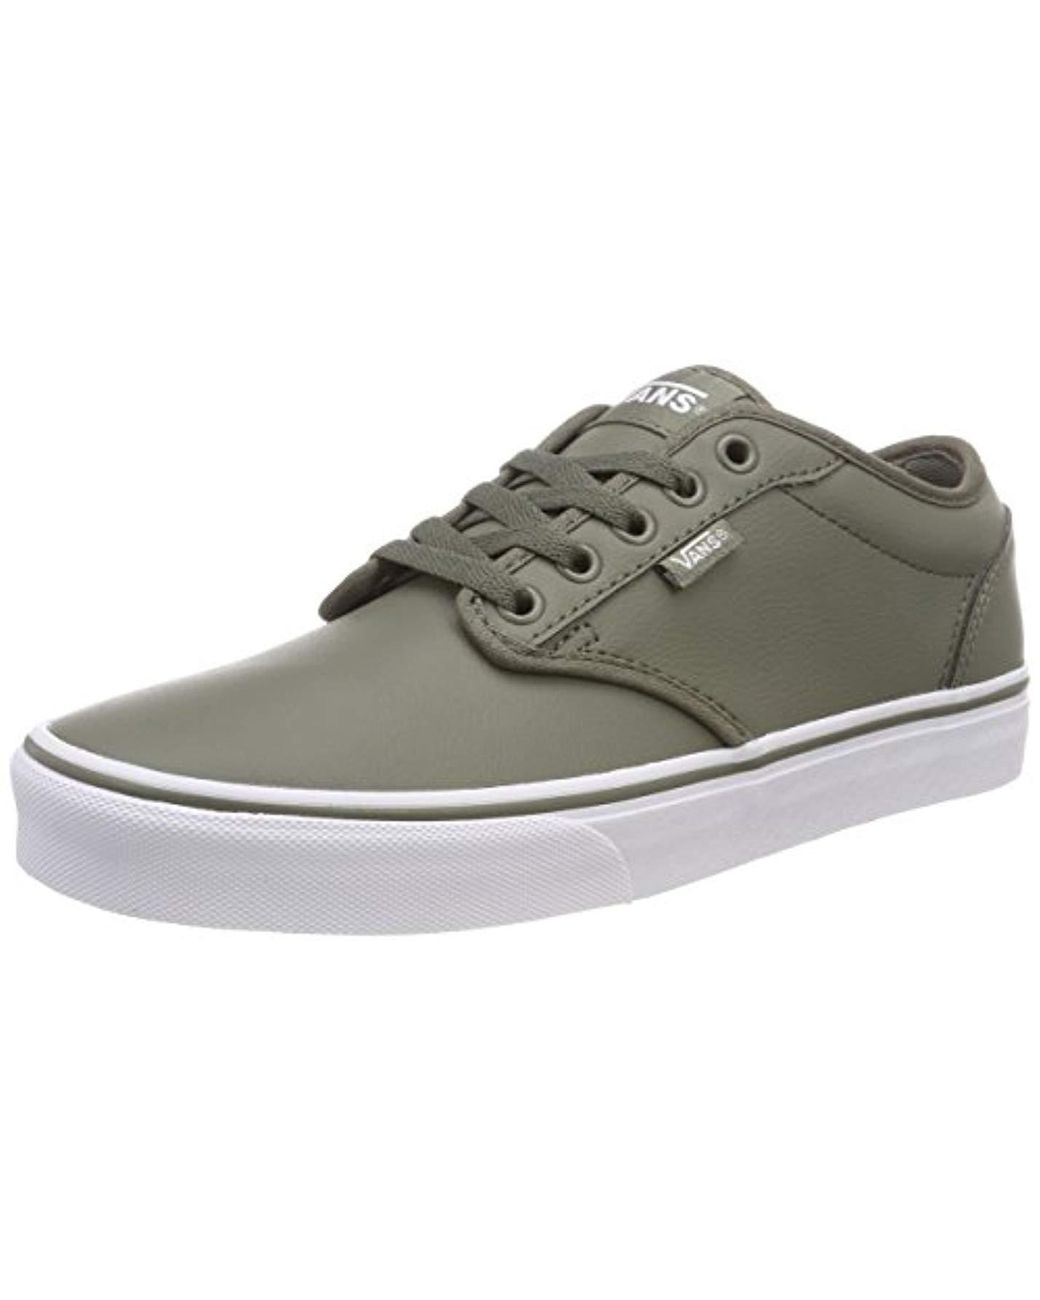 a0993964f2 Vans Atwood Synthetic Leather Low-top Sneakers in Green for Men - Lyst